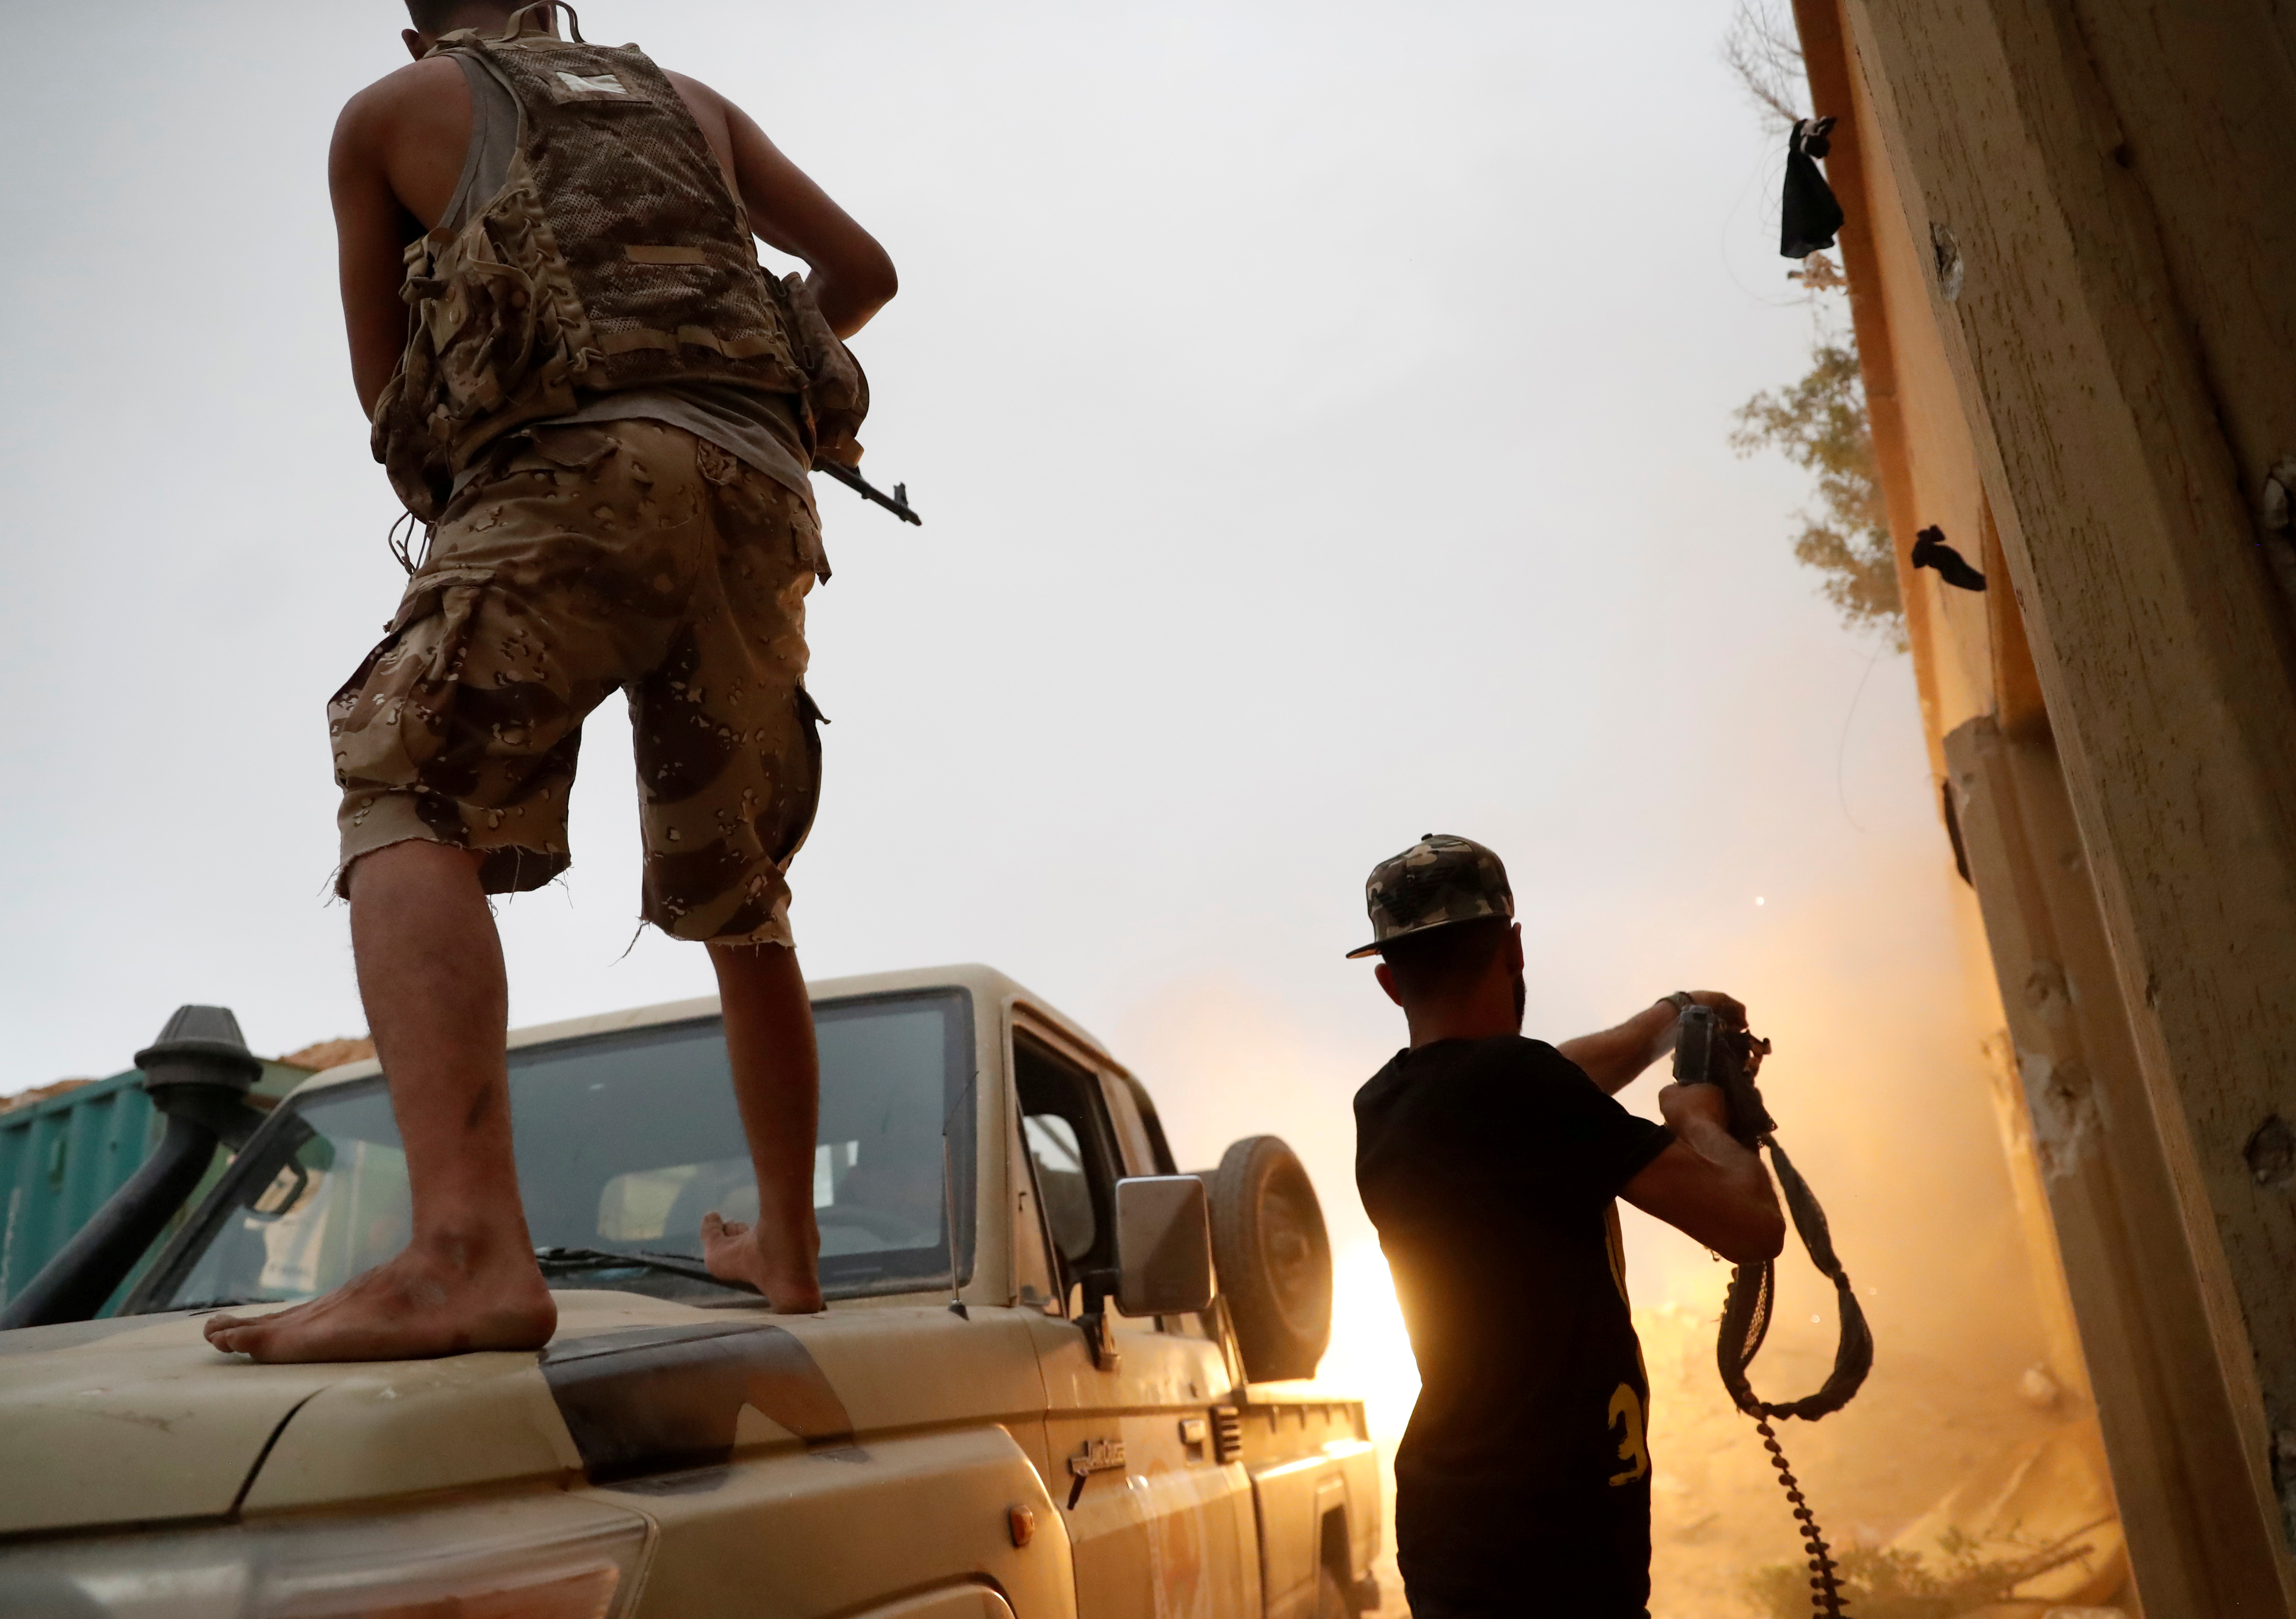 Fighters loyal to Libya's U.N.-backed government (GNA) fire guns during clashes with forces loyal to Khalifa Haftar on the outskirts of Tripoli, Libya May 25, 2019. REUTERS/Goran Tomasevic/File Photo